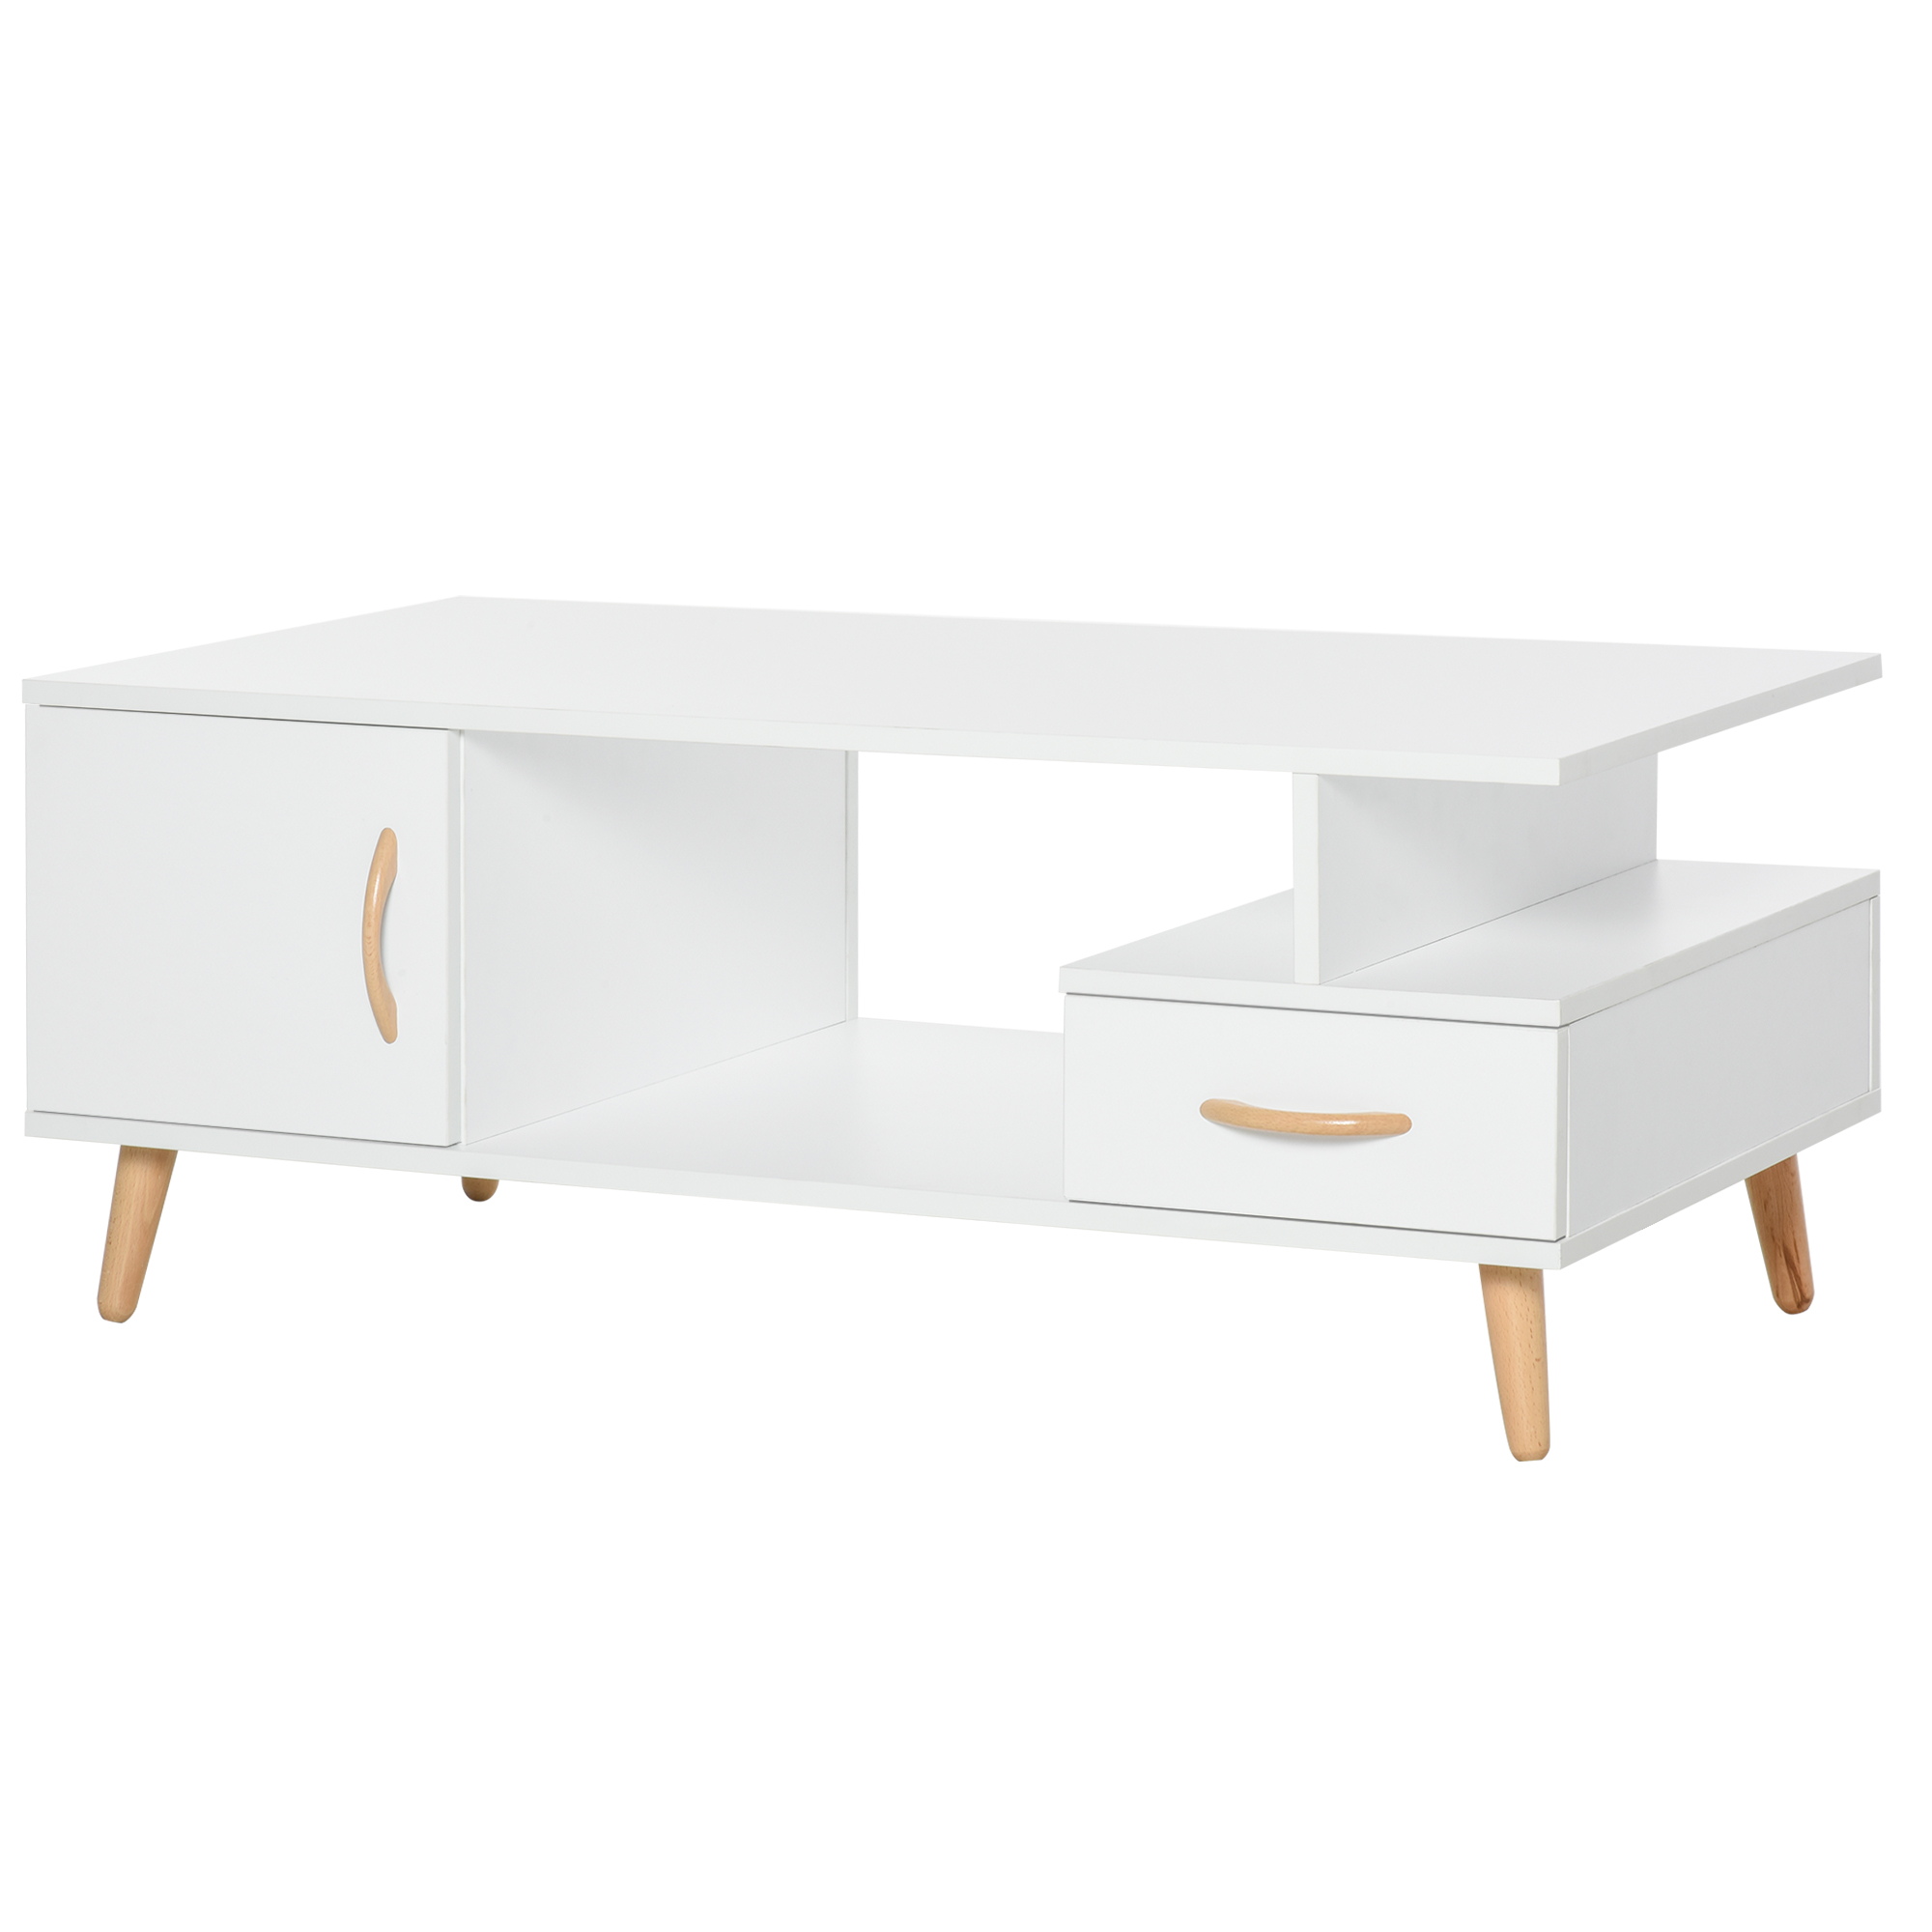 Table basse rectangulaire design scandinave blanc